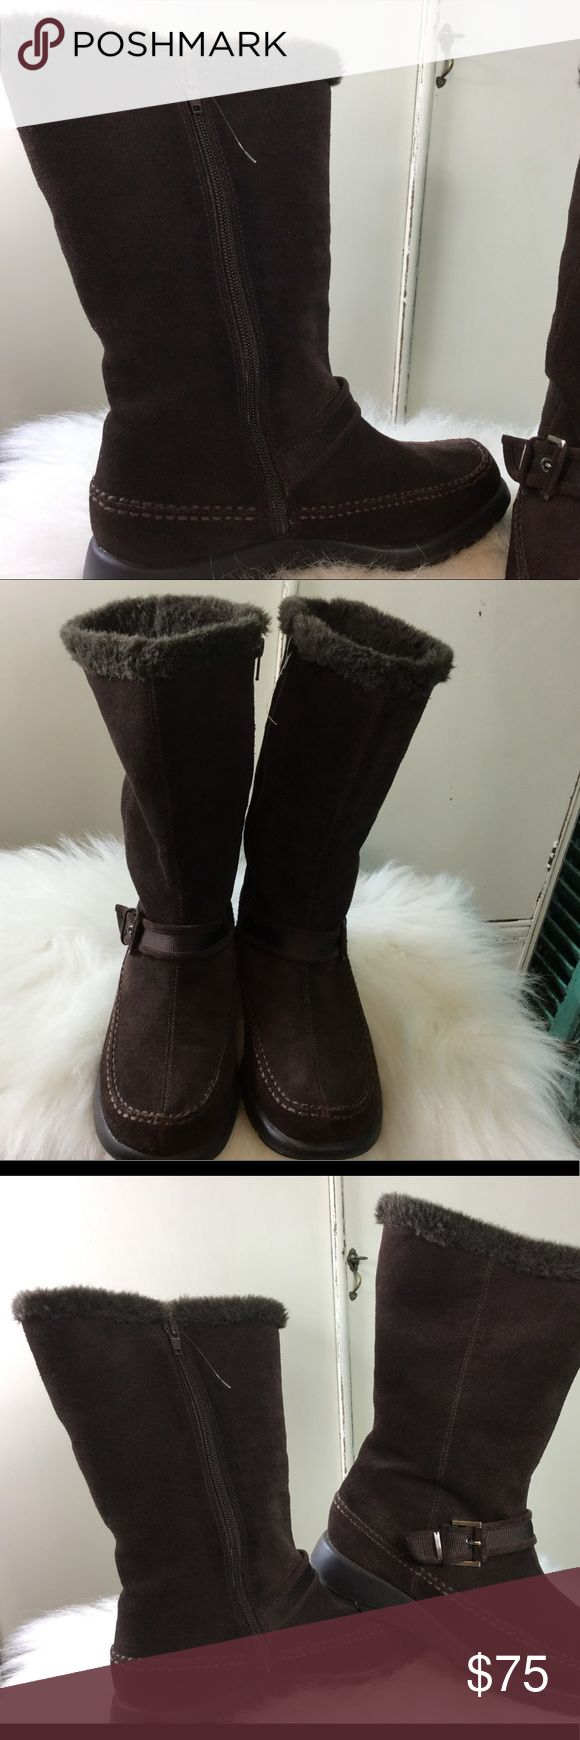 NWOT Aerosols Leather Squish Squash Boots NWOT These are Absolutely the Warmest Most Comfortable Boots I Have Ever Had on my Feet.  The Squish Squash Technology Feels Like you are Walking on a Cloud AEROSOLES Shoes Winter & Rain Boots